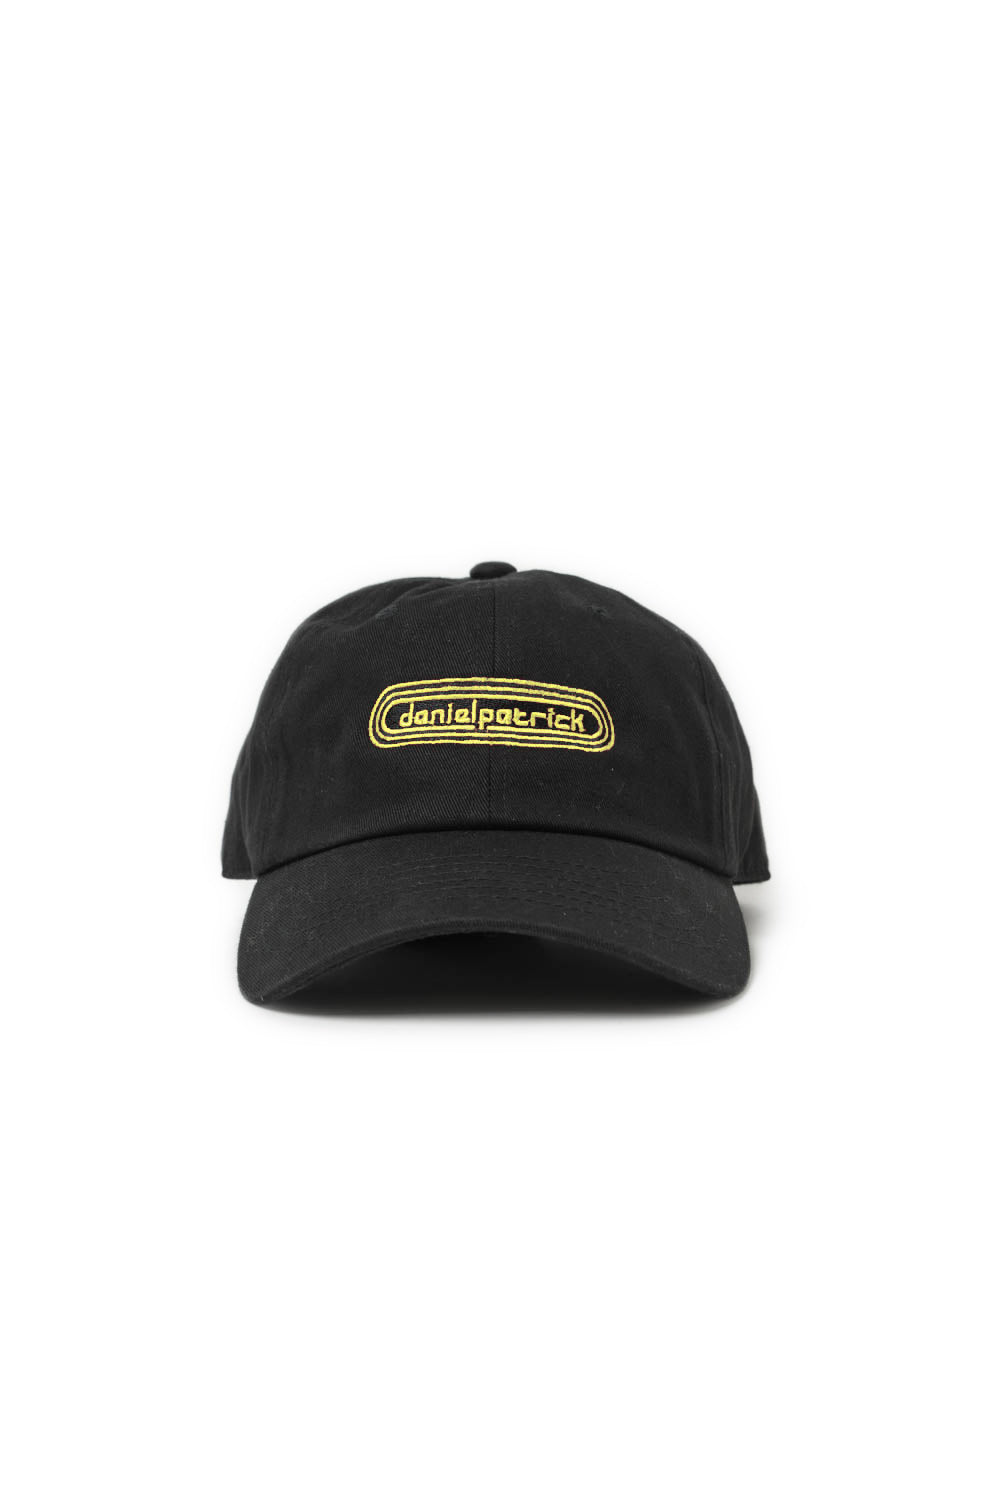 track cap in black/yellow by daniel patrick